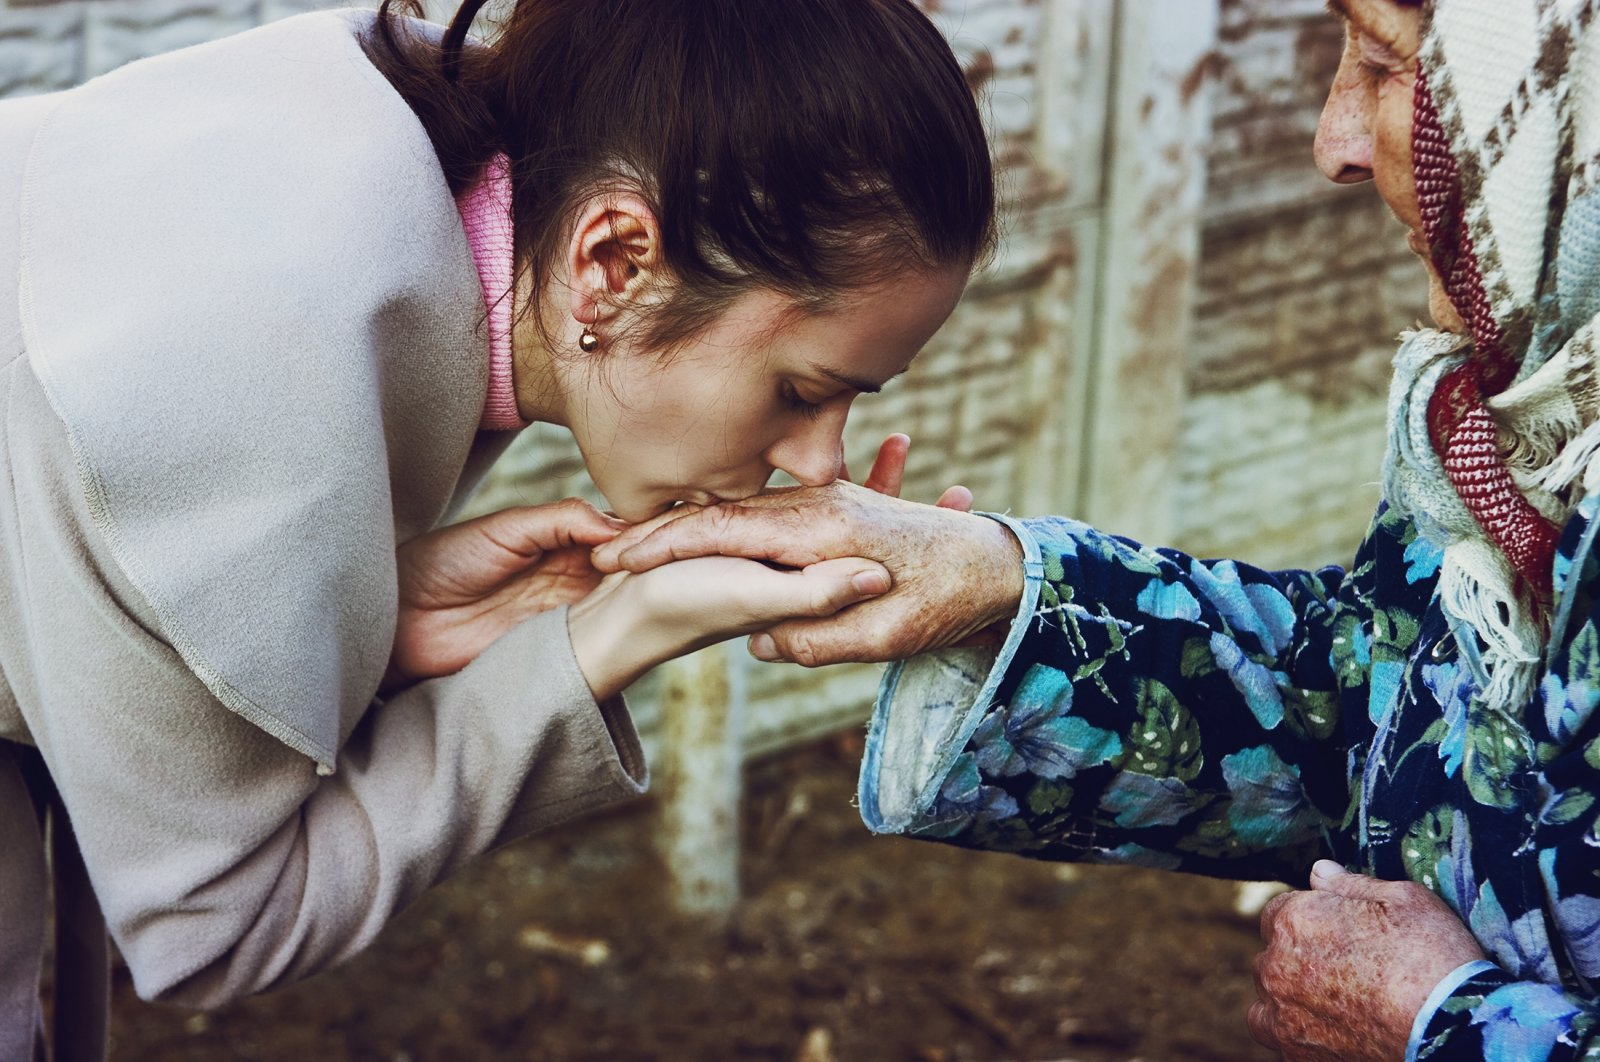 A young girl presents her bayram greeting by kissing the hand of an elder. (Shutterstock Photo)